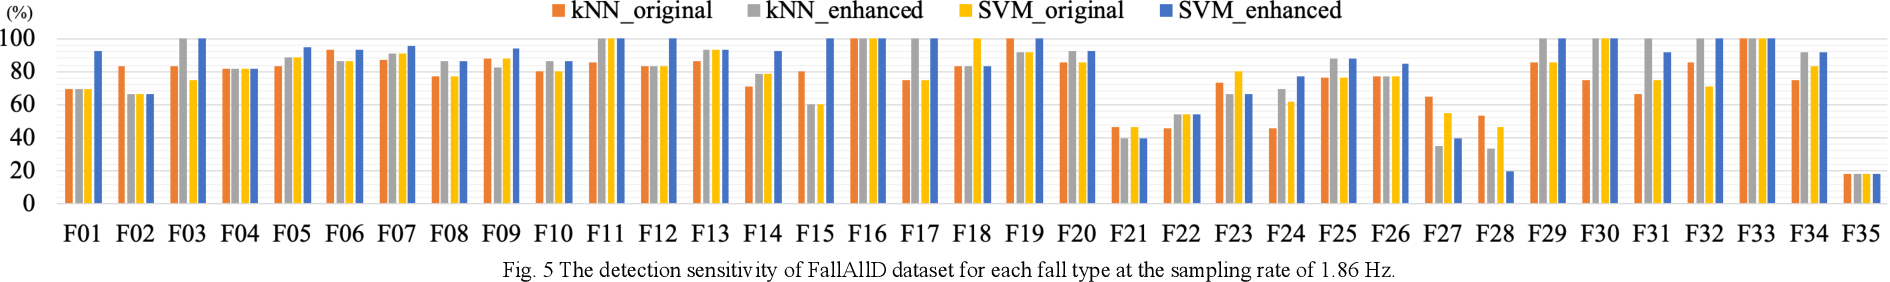 Figure 4 for Deep Learning Based Signal Enhancement of Low-Resolution Accelerometer for Fall Detection Systems